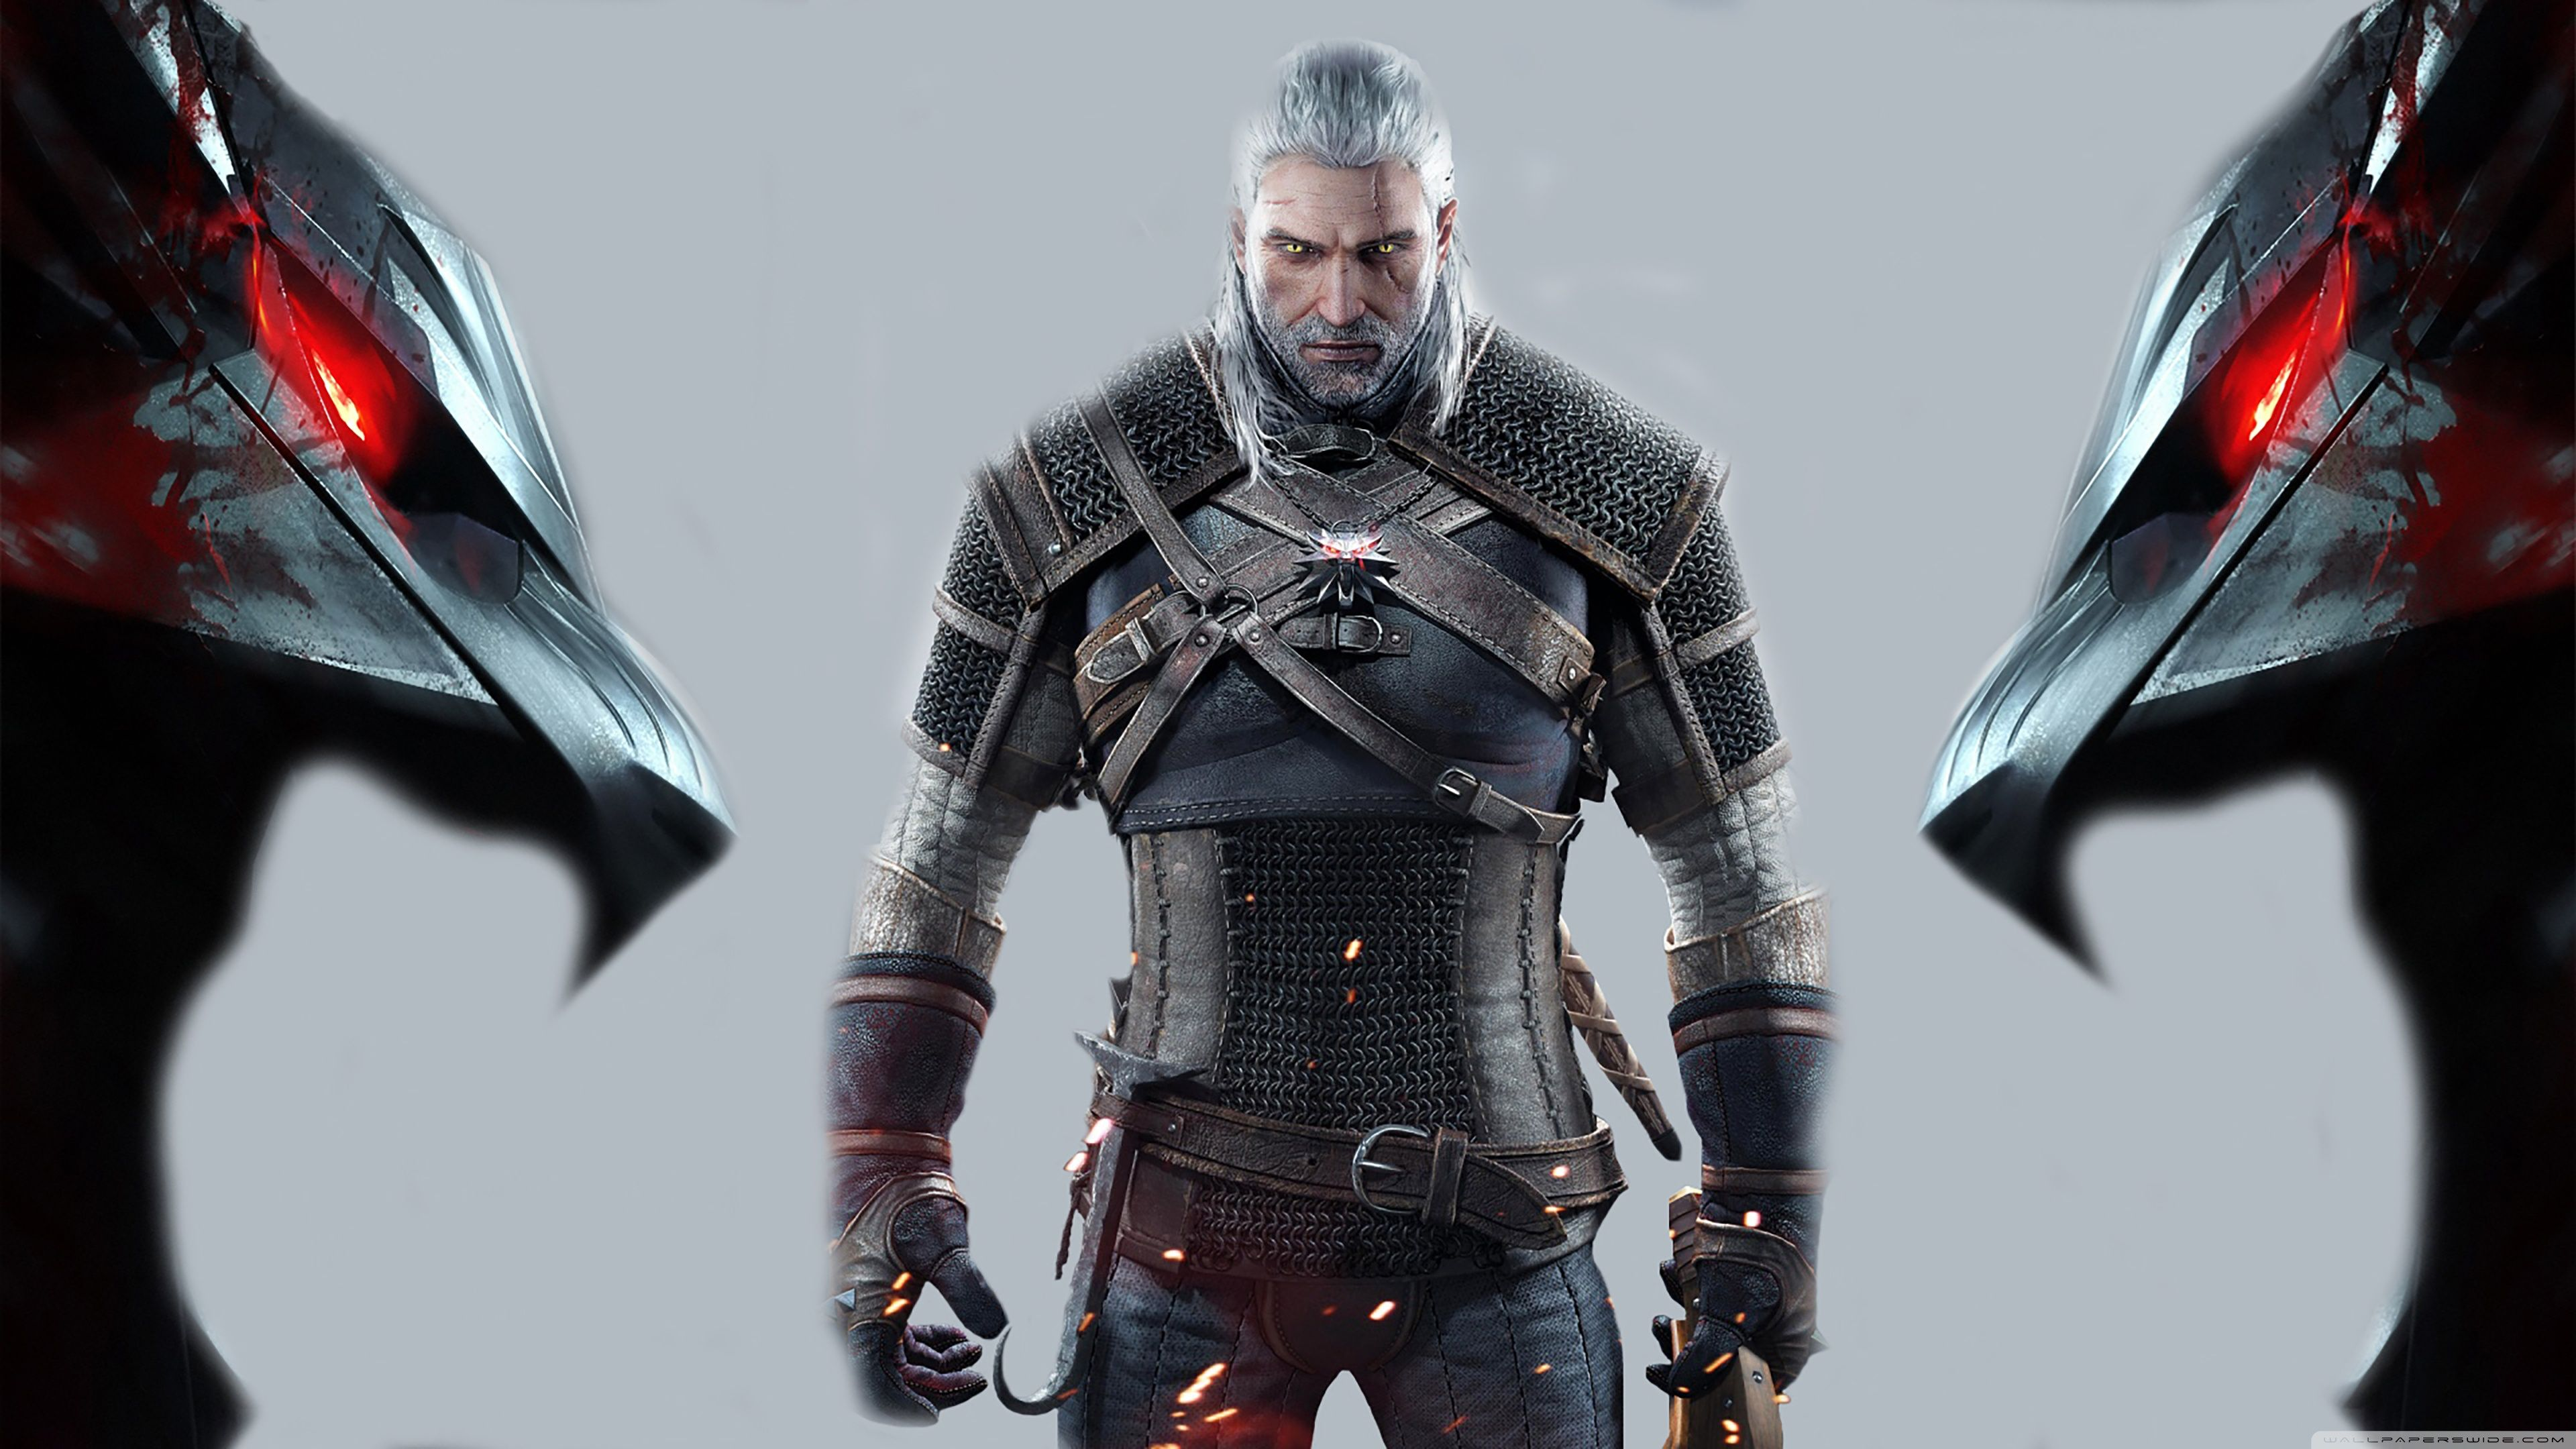 Top Free Witcher 4K Backgrounds